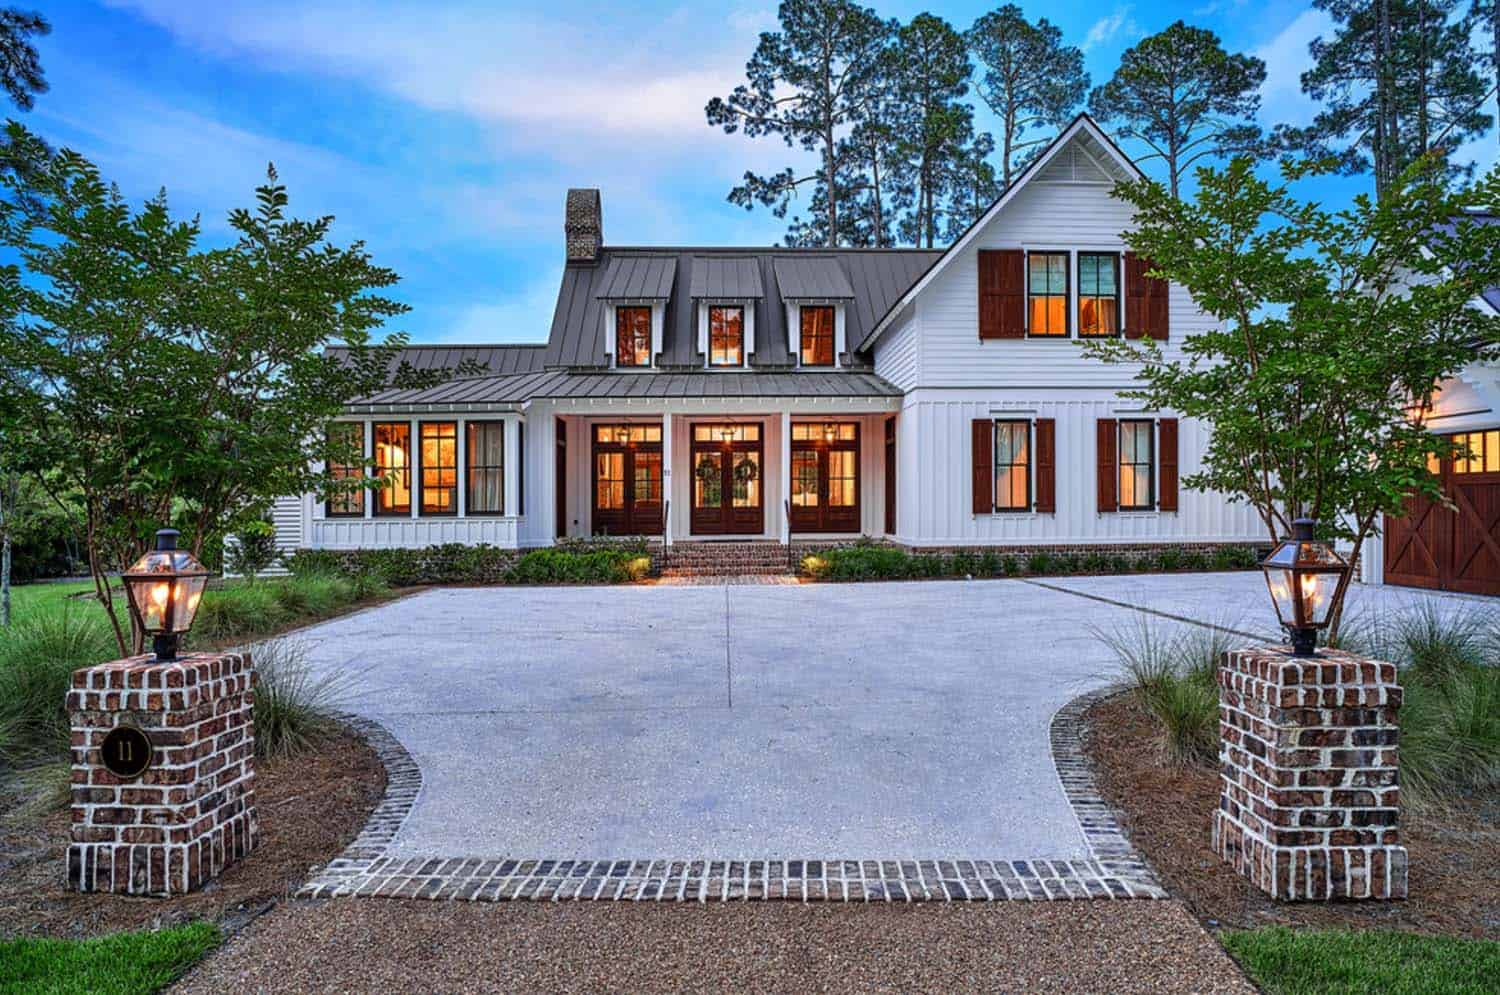 Exquisite south carolina farmhouse evoking a low country style for New farmhouse style homes